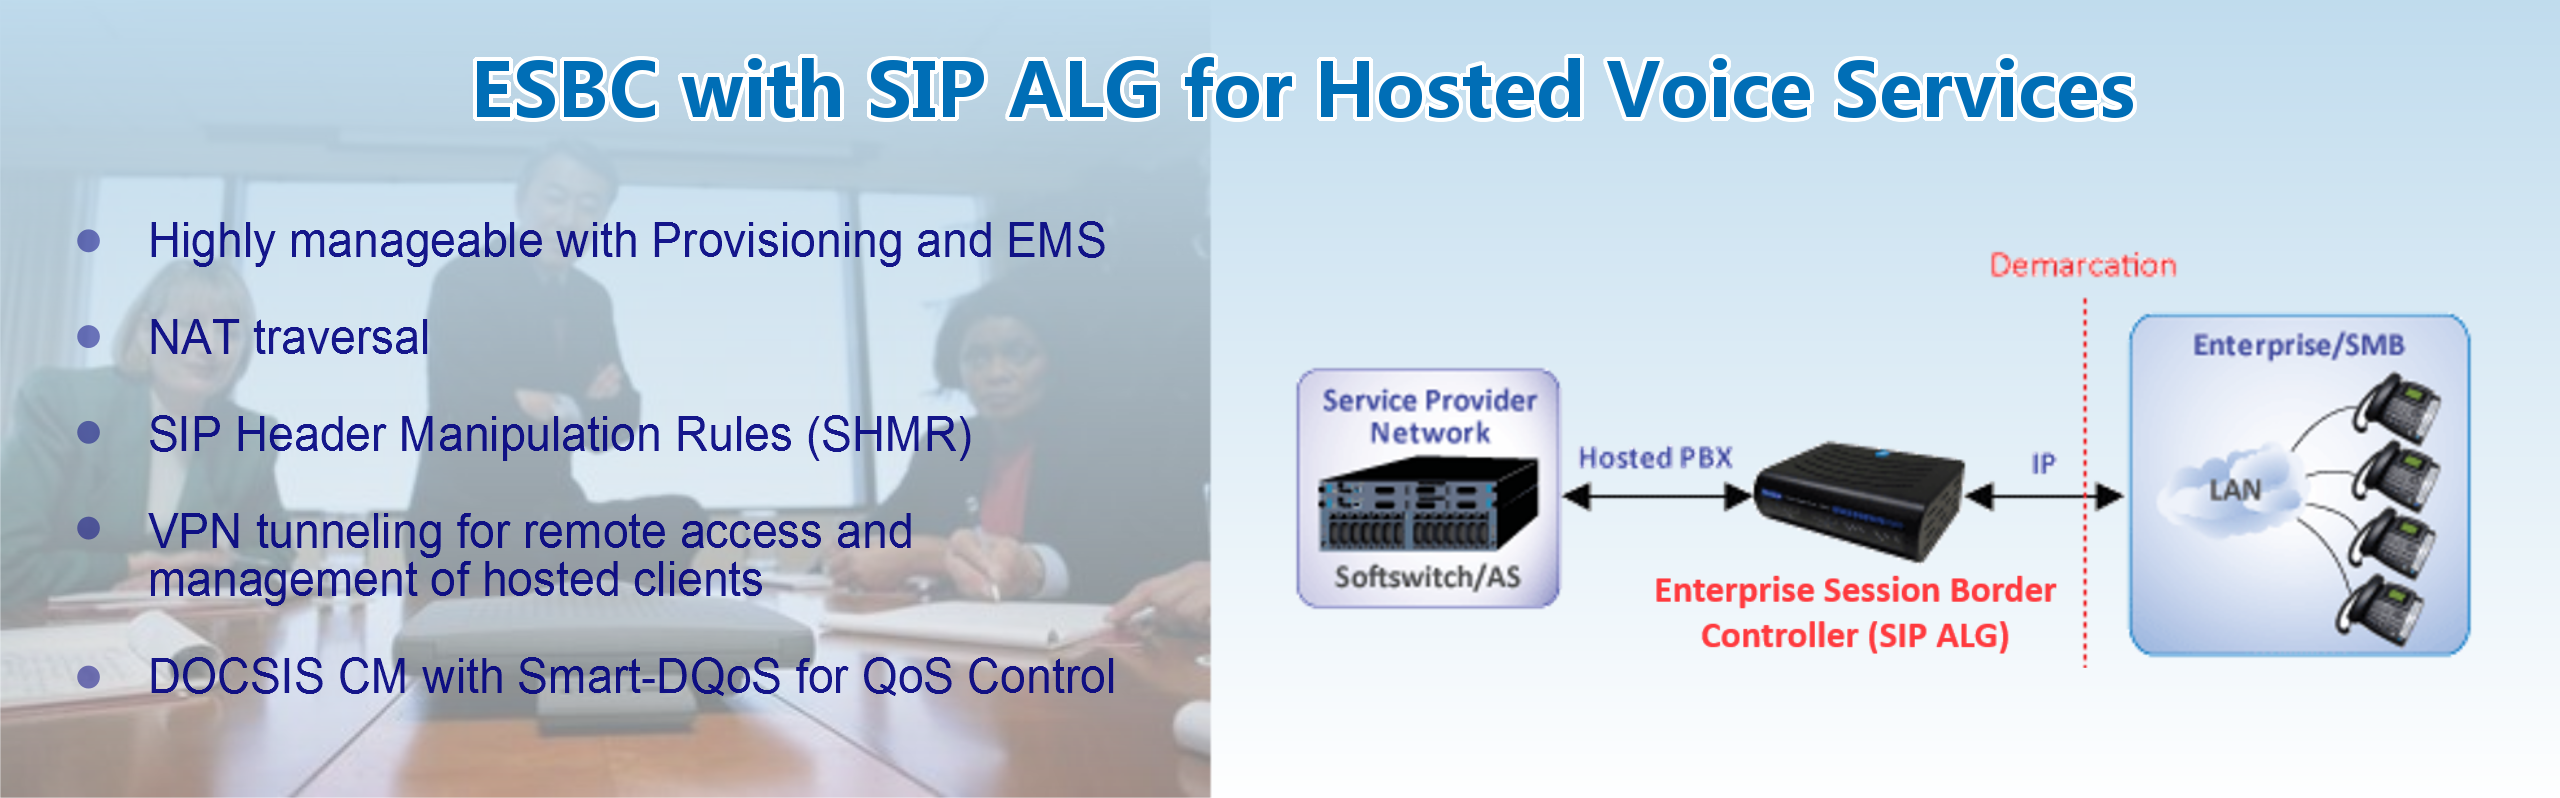 ESBC with SIP ALG for Hosted Voice Services